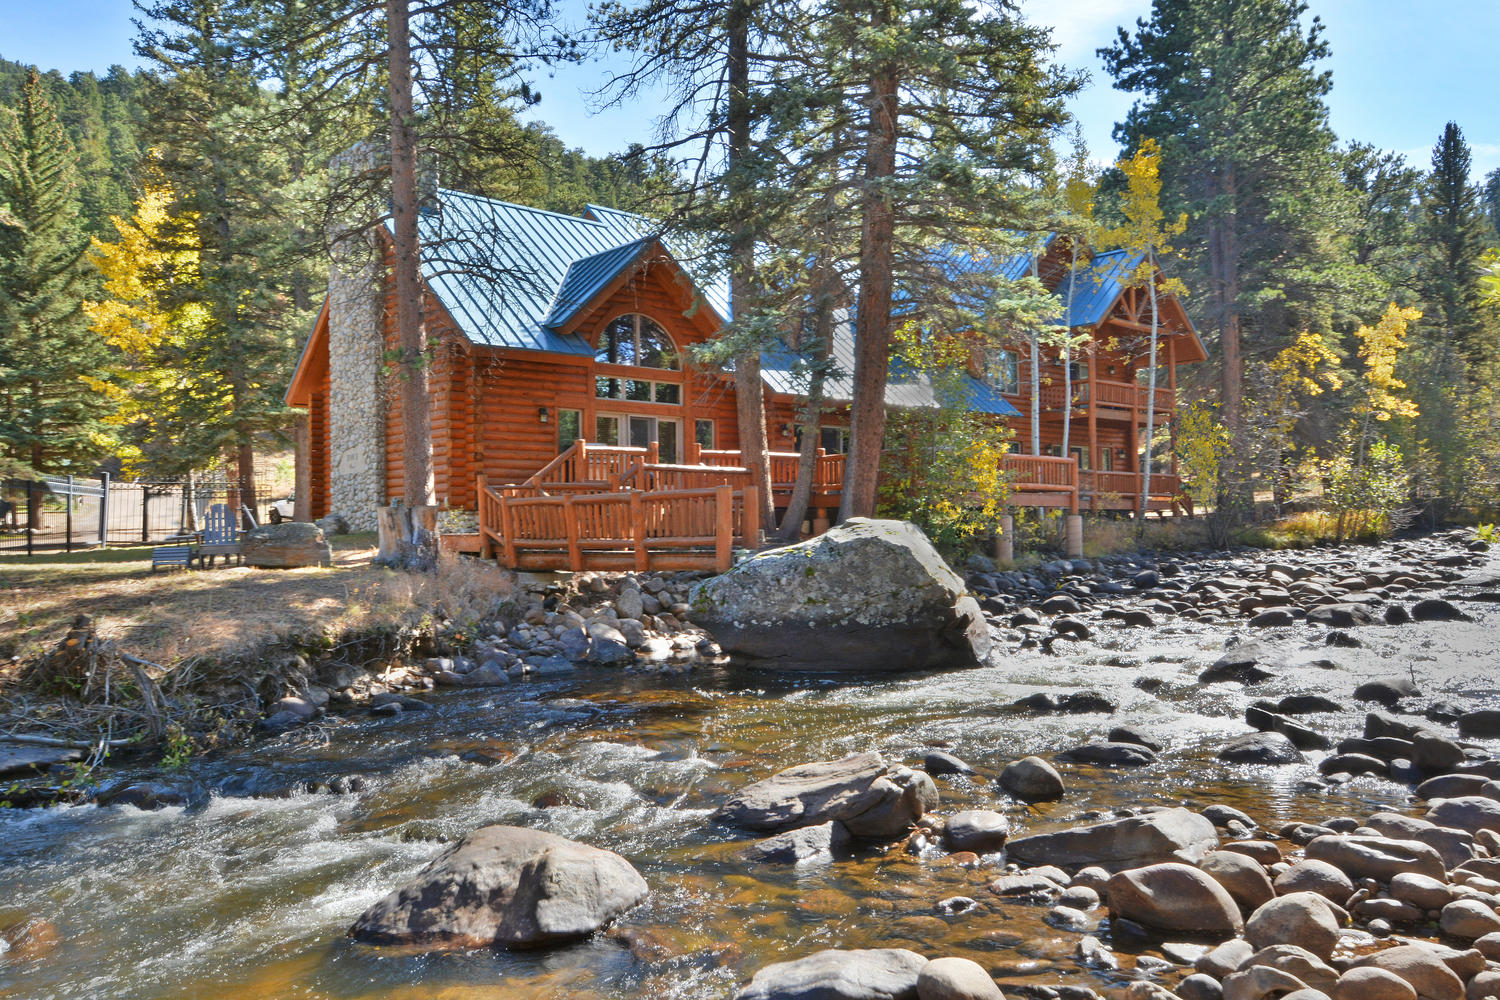 Single Family Home for Active at Majestic Log Cabin 2222 Highway 66 Estes Park, Colorado 80517 United States